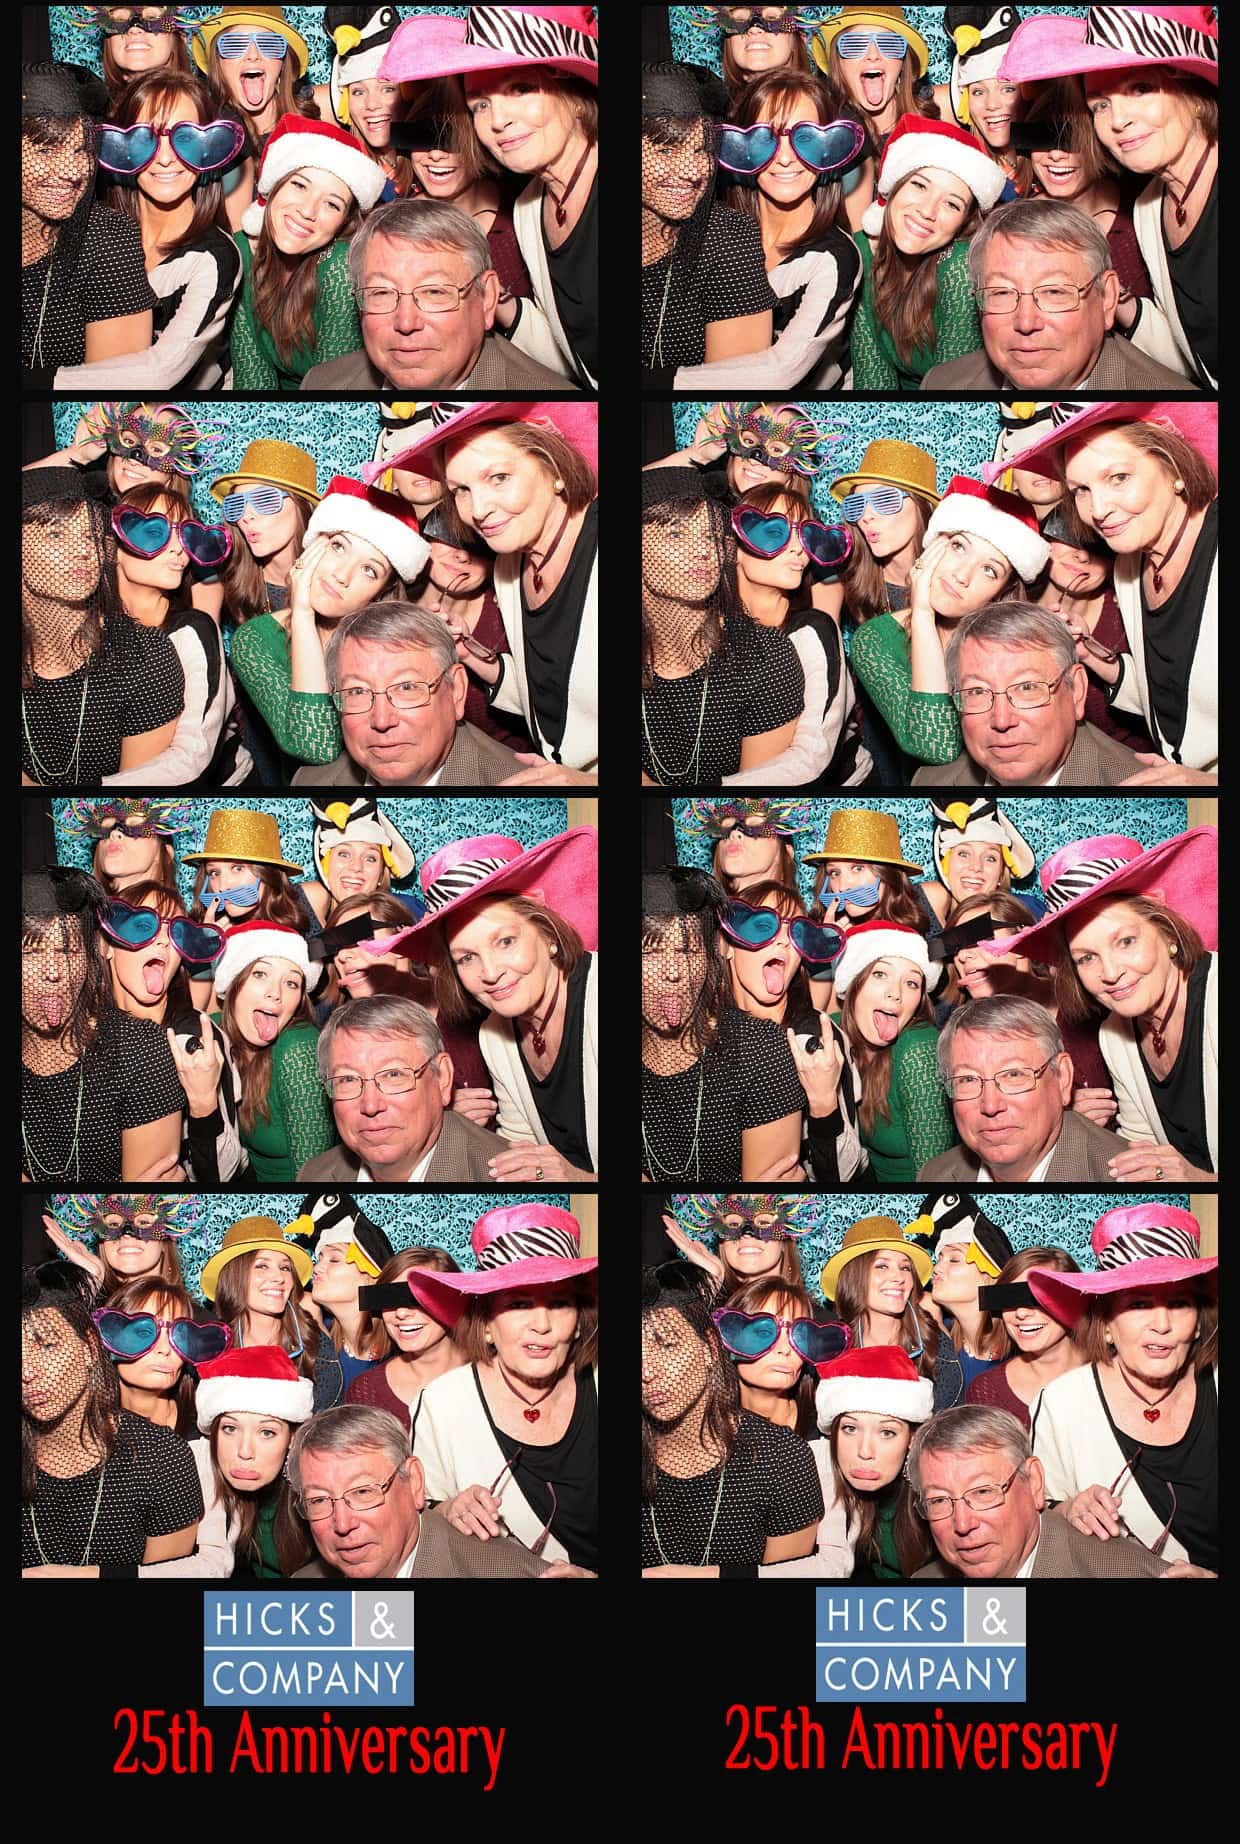 Photobooth-Rental-Company-Party-Anniversity-No. 1-Austin-Memories-Awesome-Fun